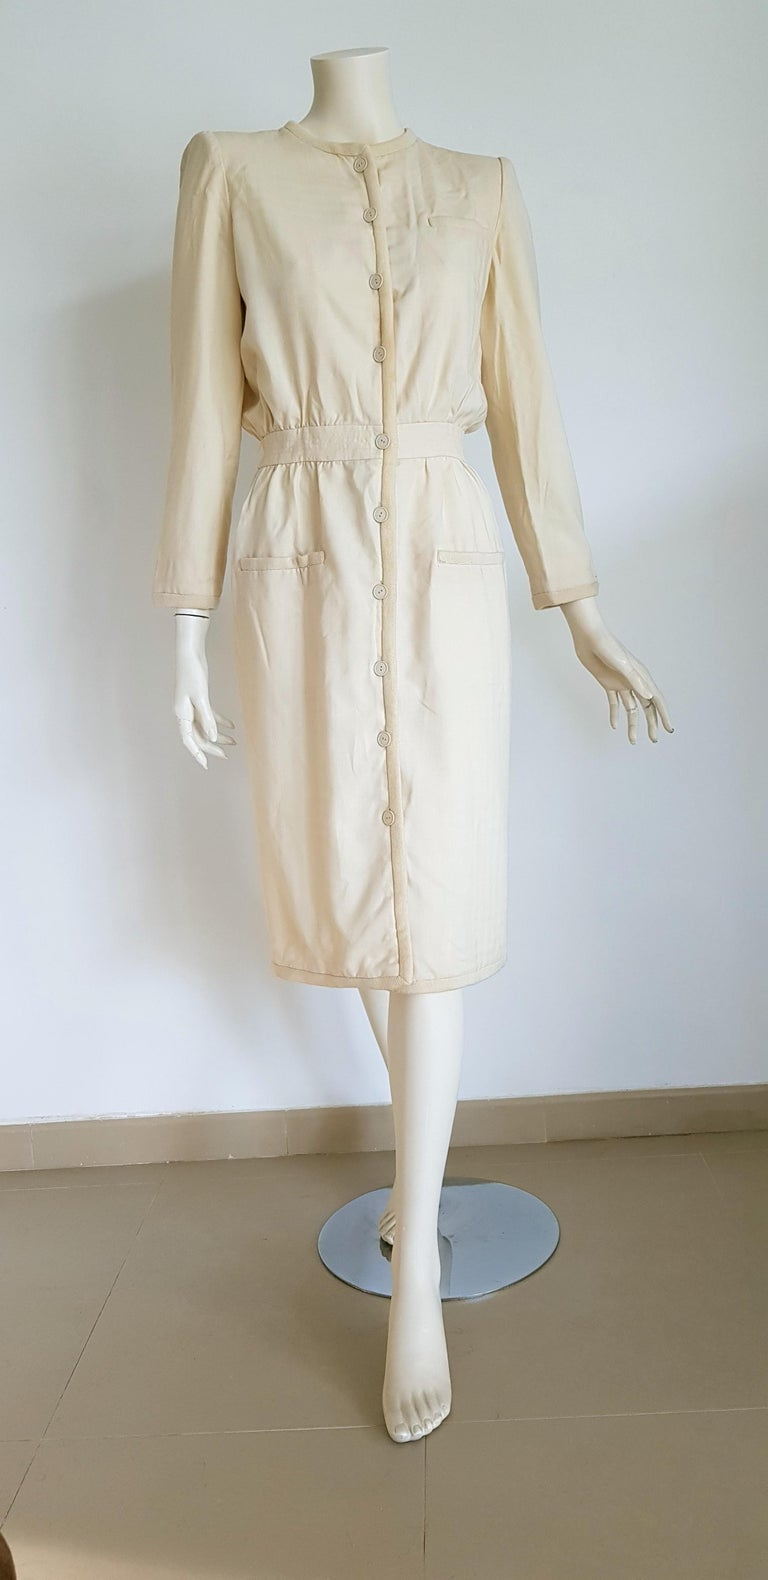 VALENTINO white cream silk and wool dress silk lined with buttons - Unworn  SIZE: equivalent to about Small / Medium, please review approx measurements as follows in cm: lenght 110, chest underarm to underarm 50, bust circumference 92, shoulder from